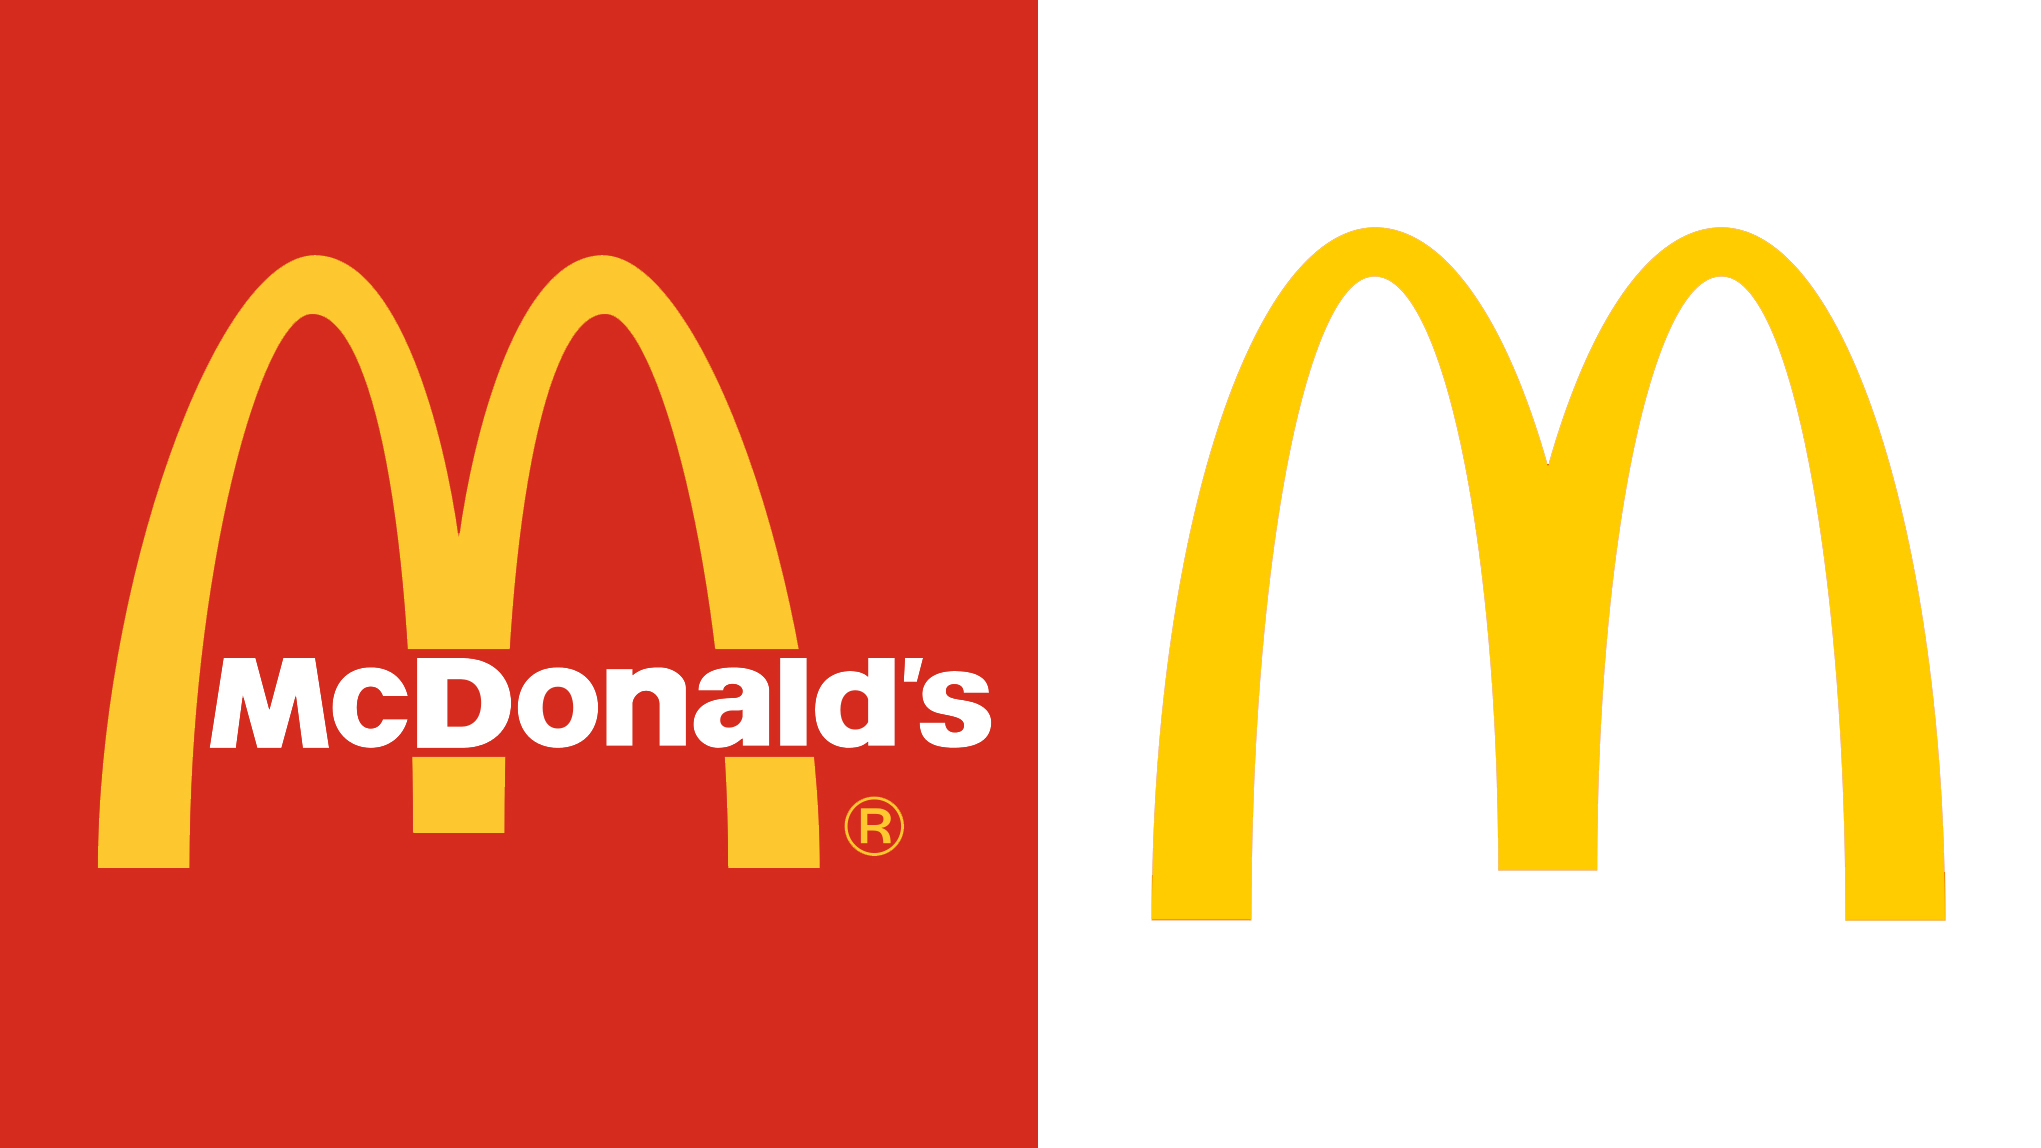 McDonald's logo before and after